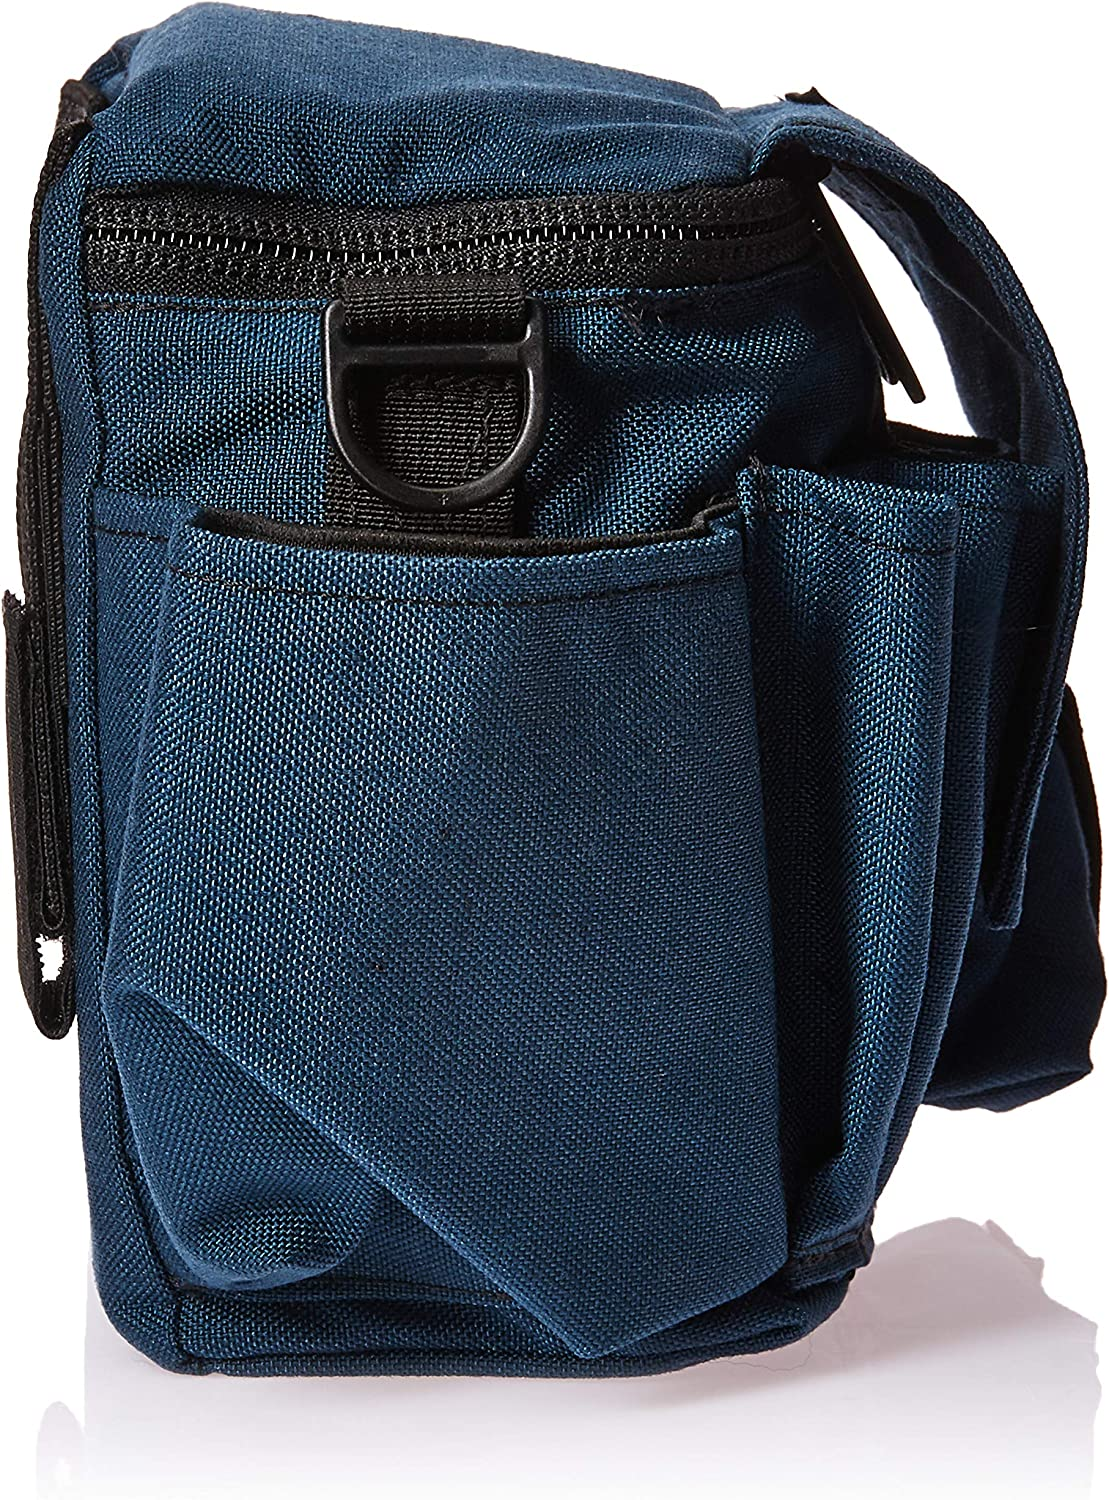 PortaBrace AC-3 Camera Case Blue